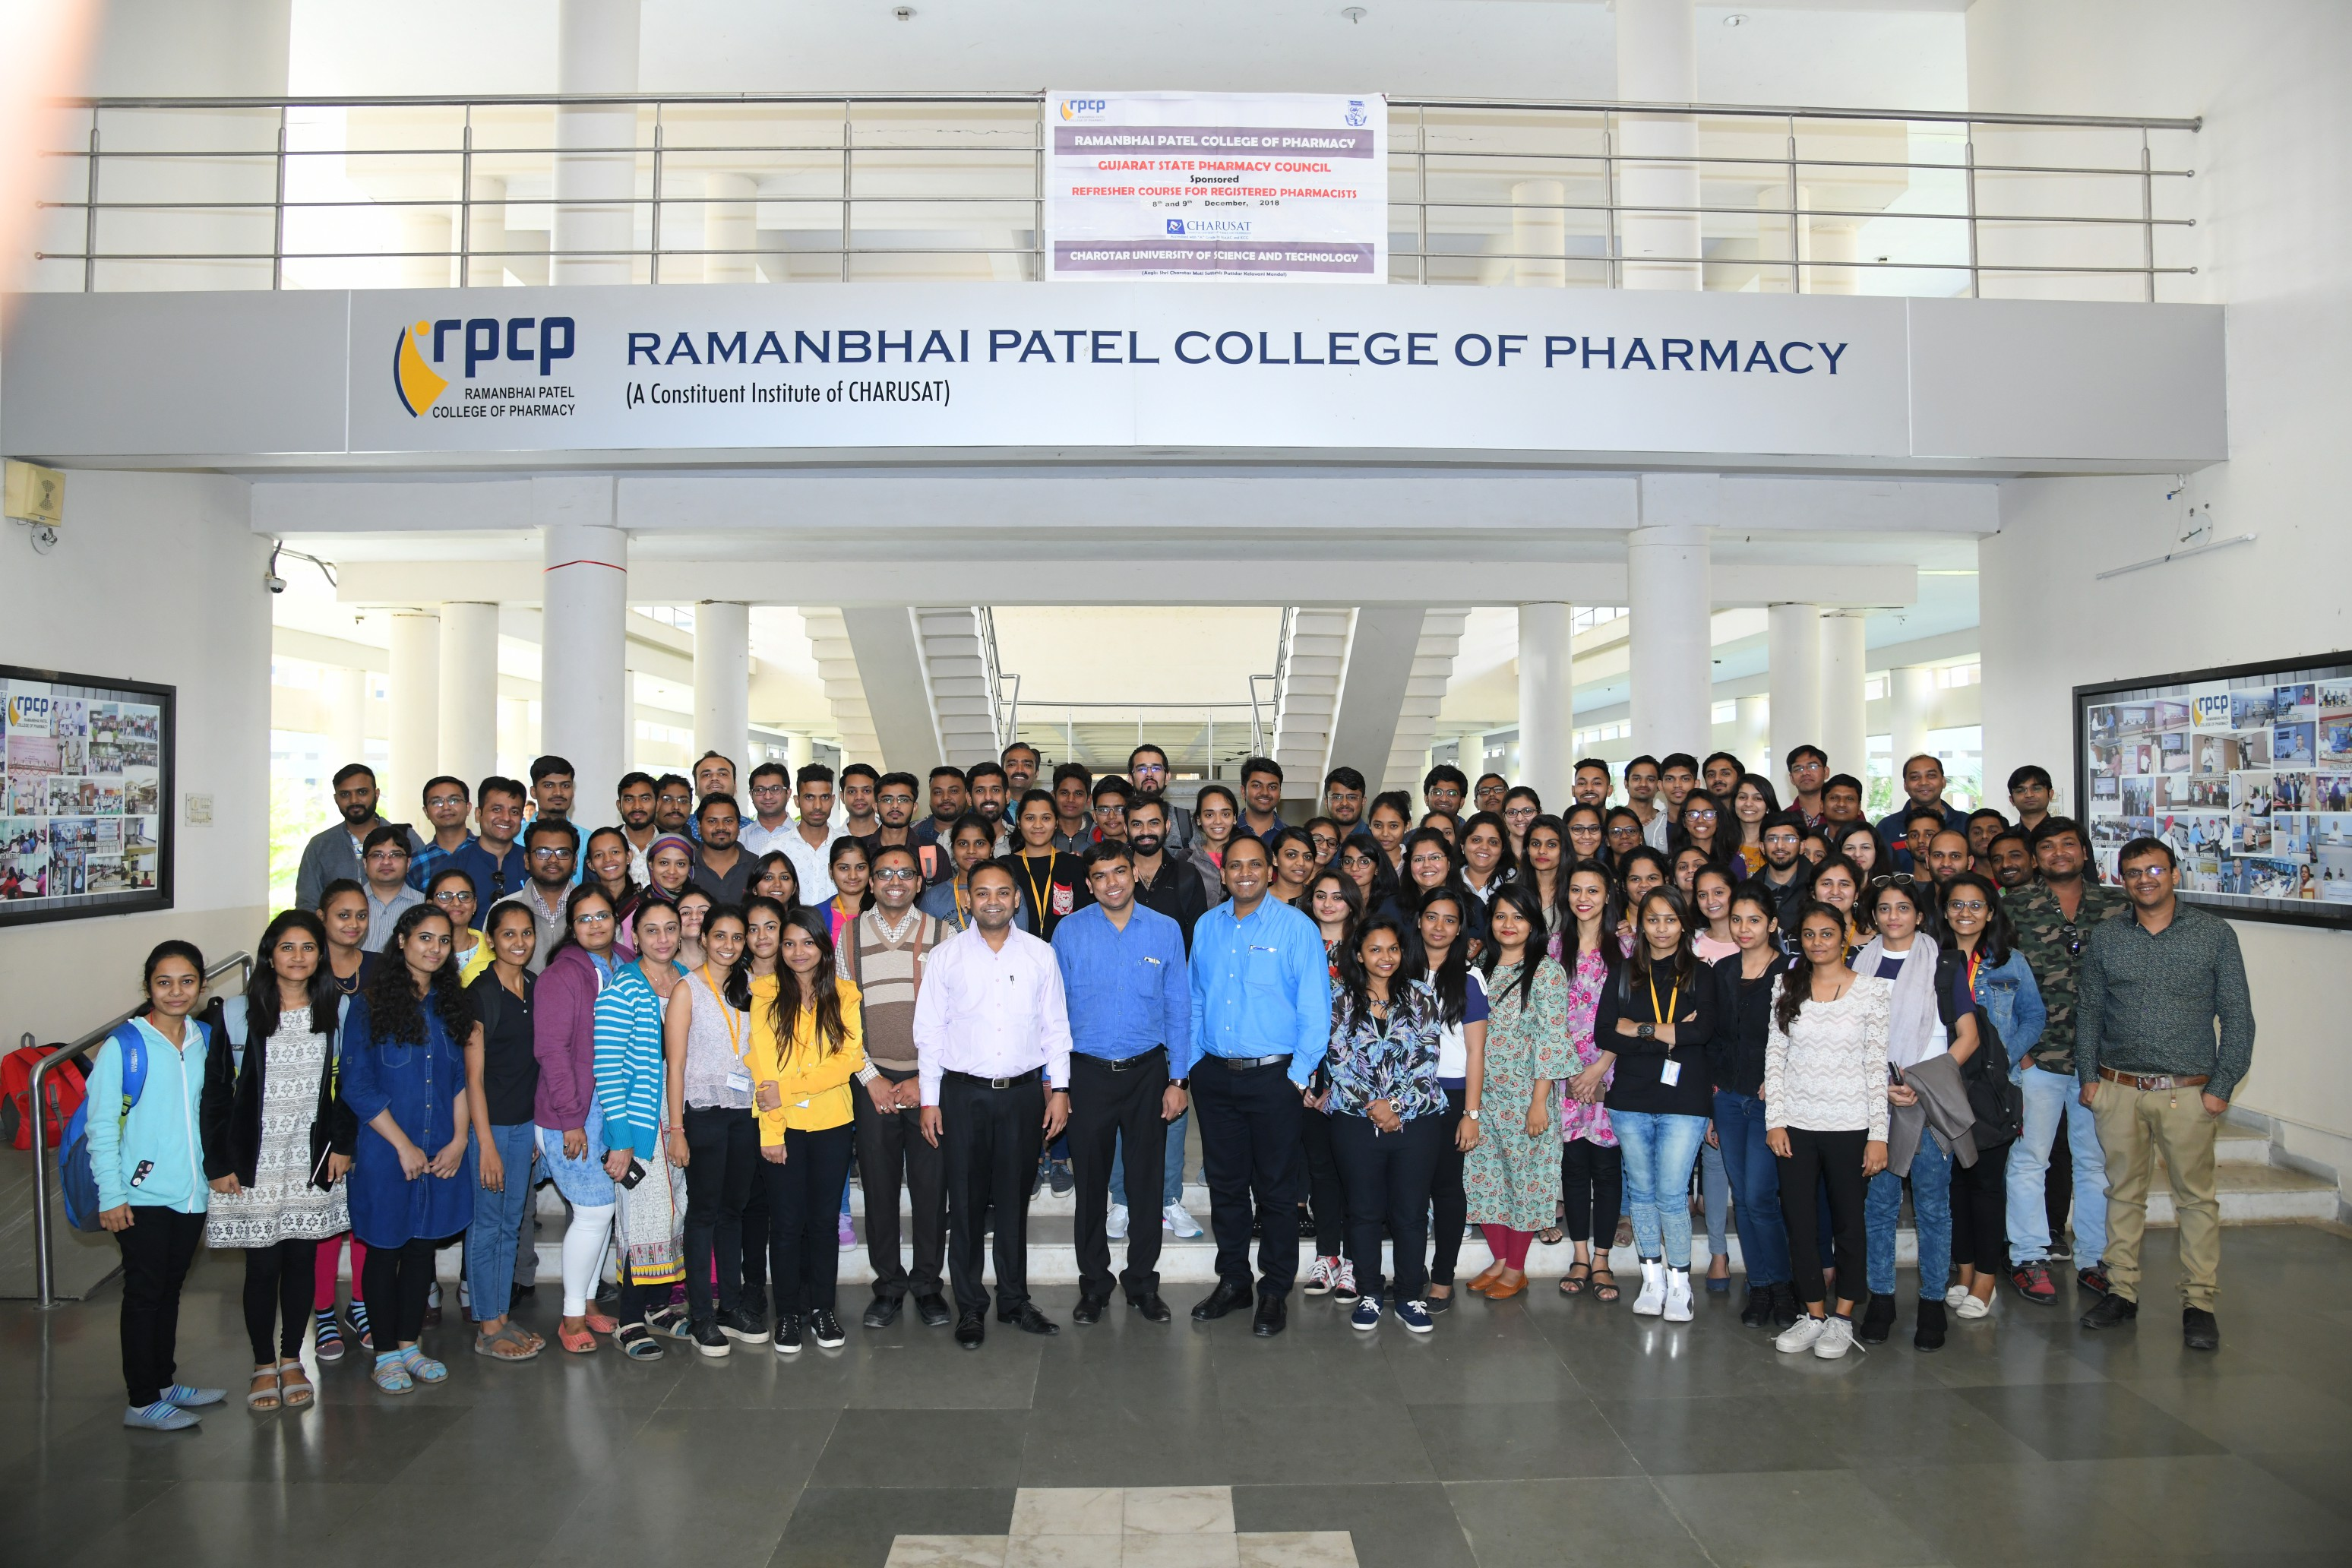 Two-day refresher course for registered pharmacists at Ramanbhai Patel College of Pharmacy, CHARUSAT